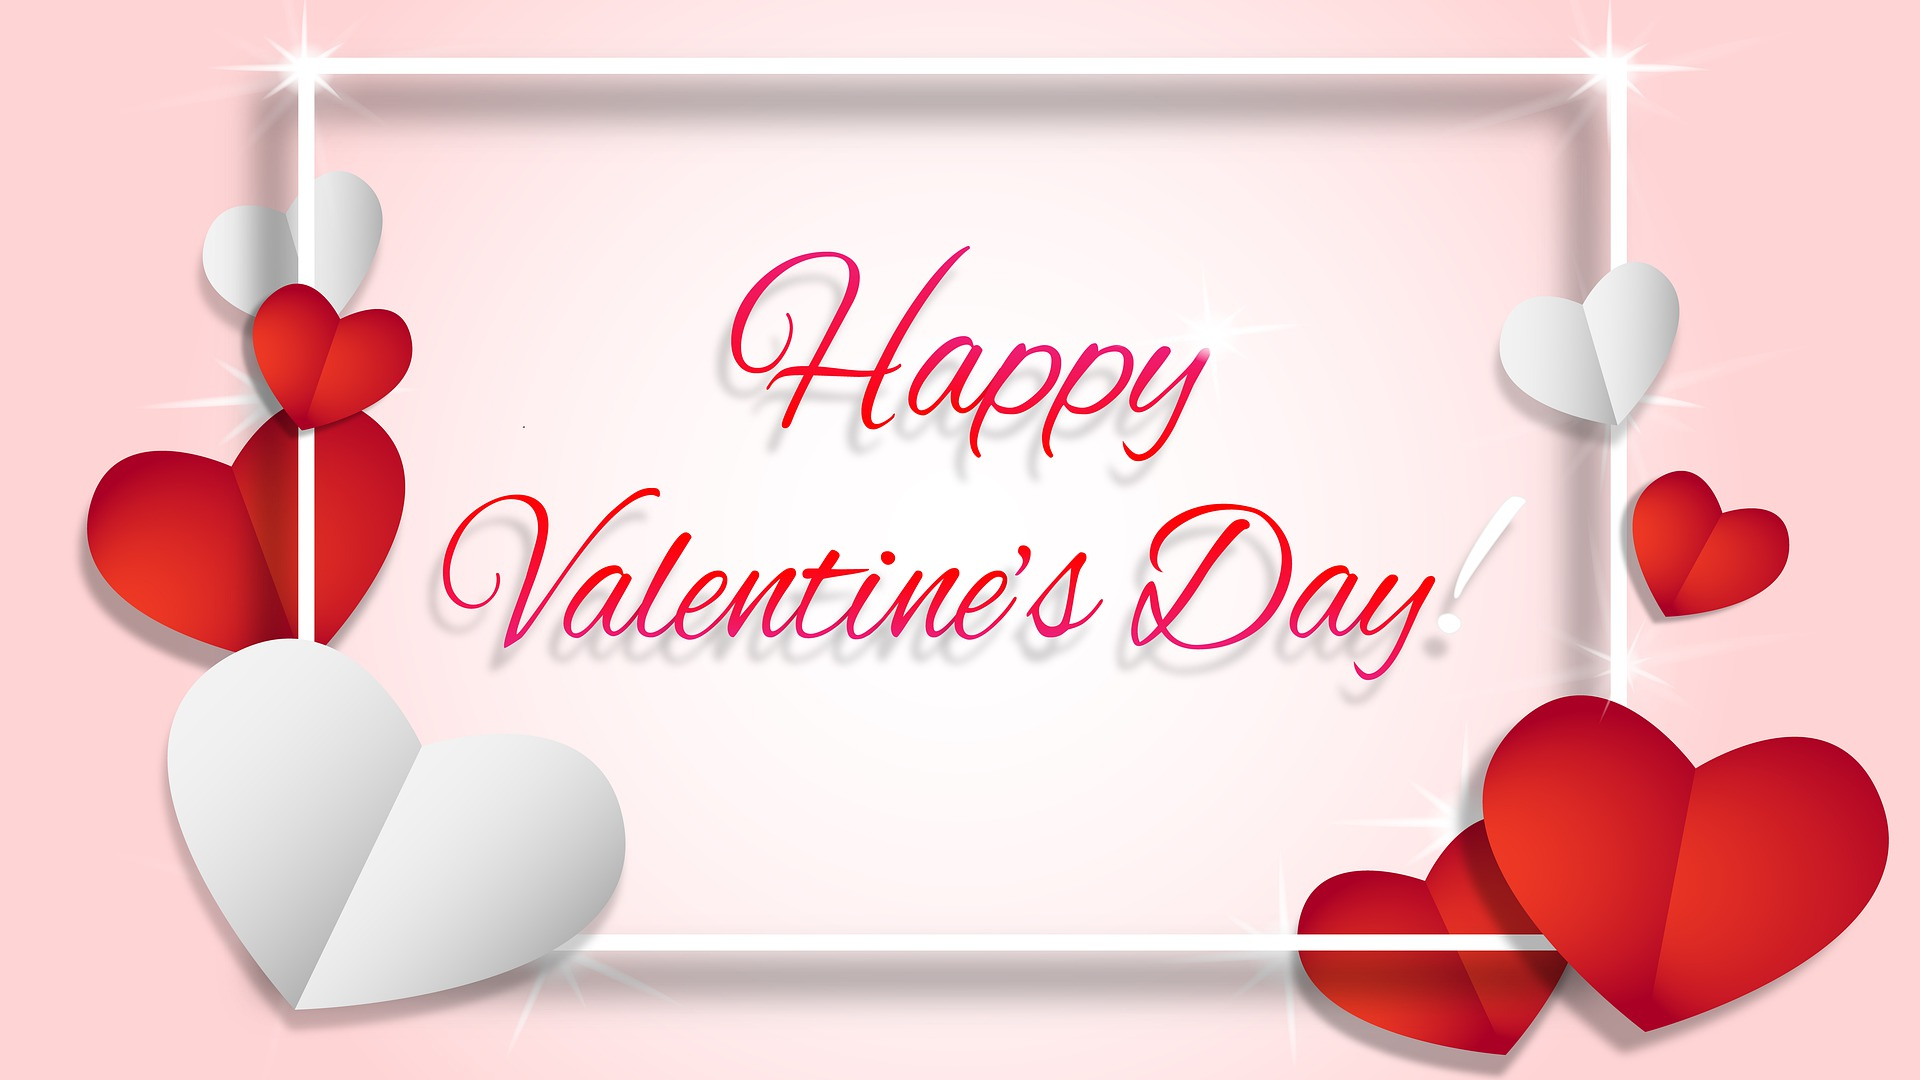 30 Happy Kiss Day Pictures Wallpapers For Lover Special: Look Flawless With A Valentine's Day Tan!